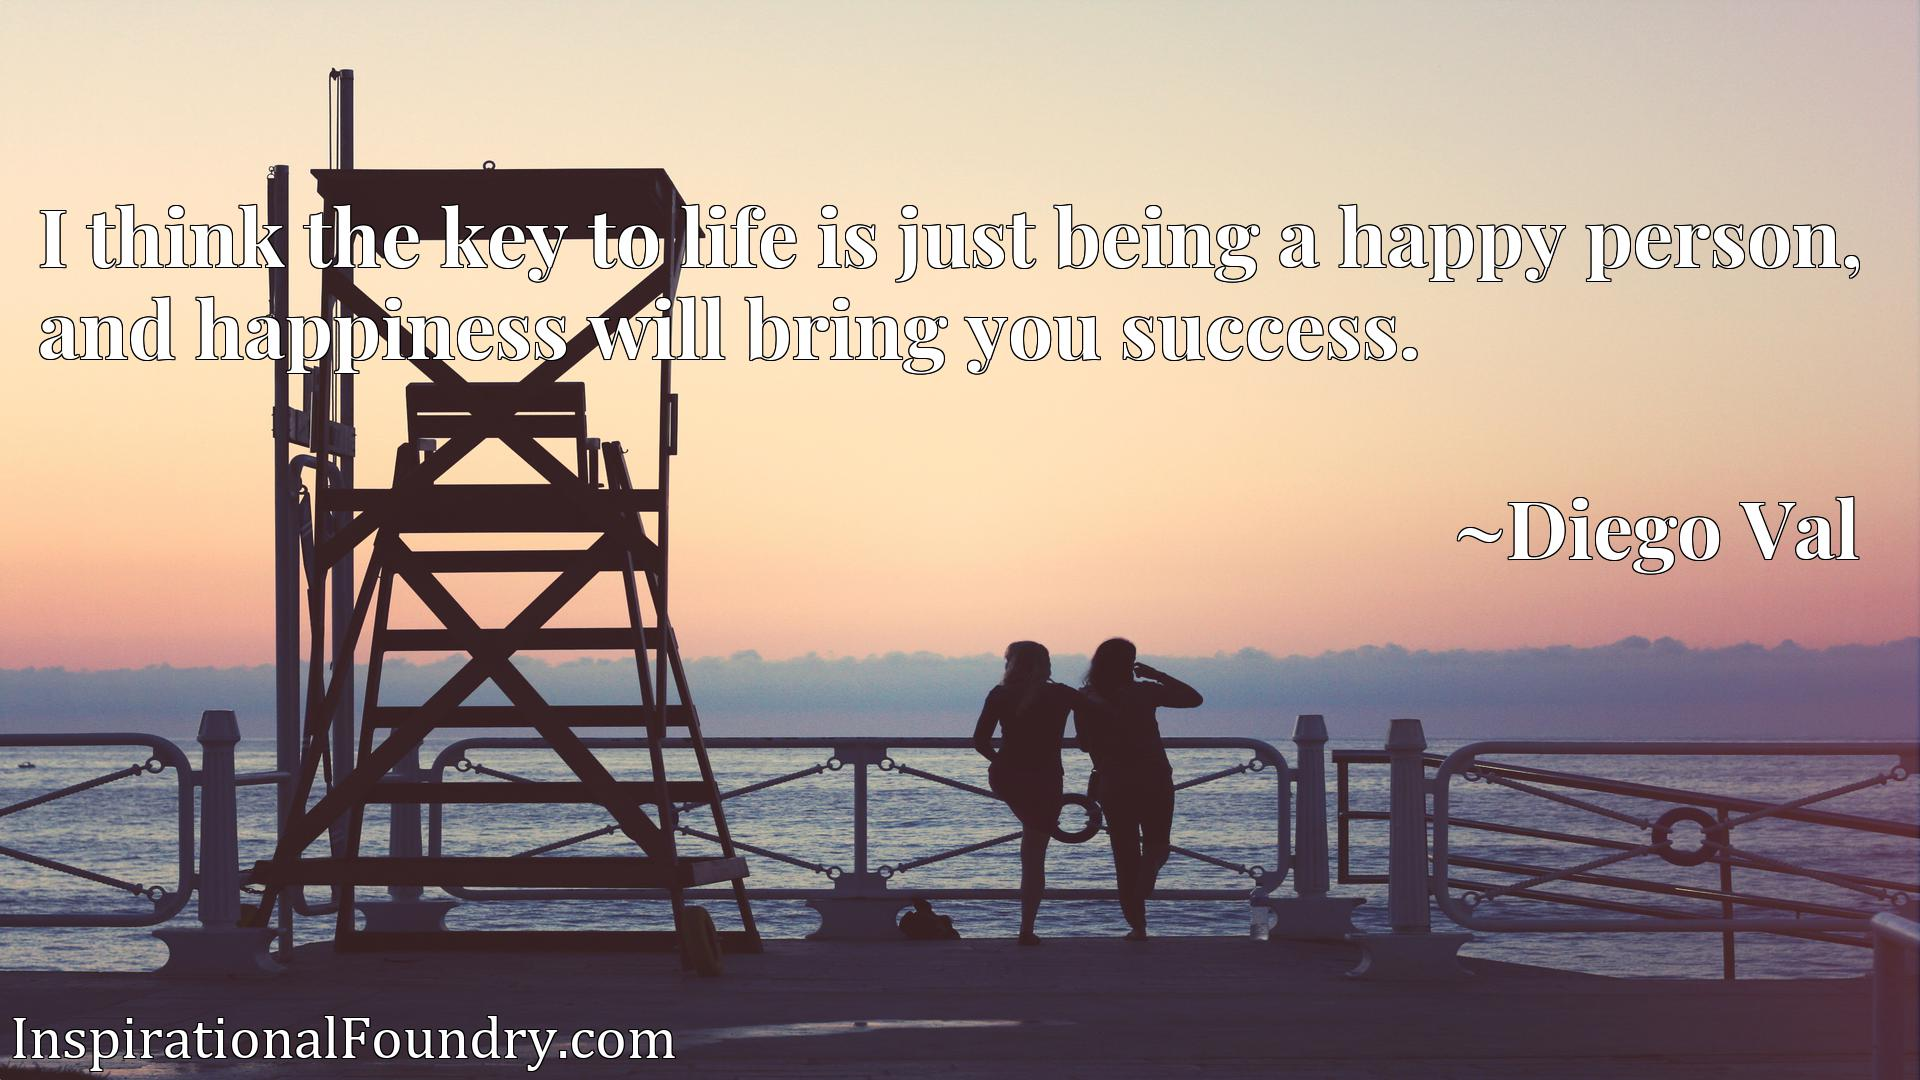 Quote Picture :I think the key to life is just being a happy person, and happiness will bring you success.